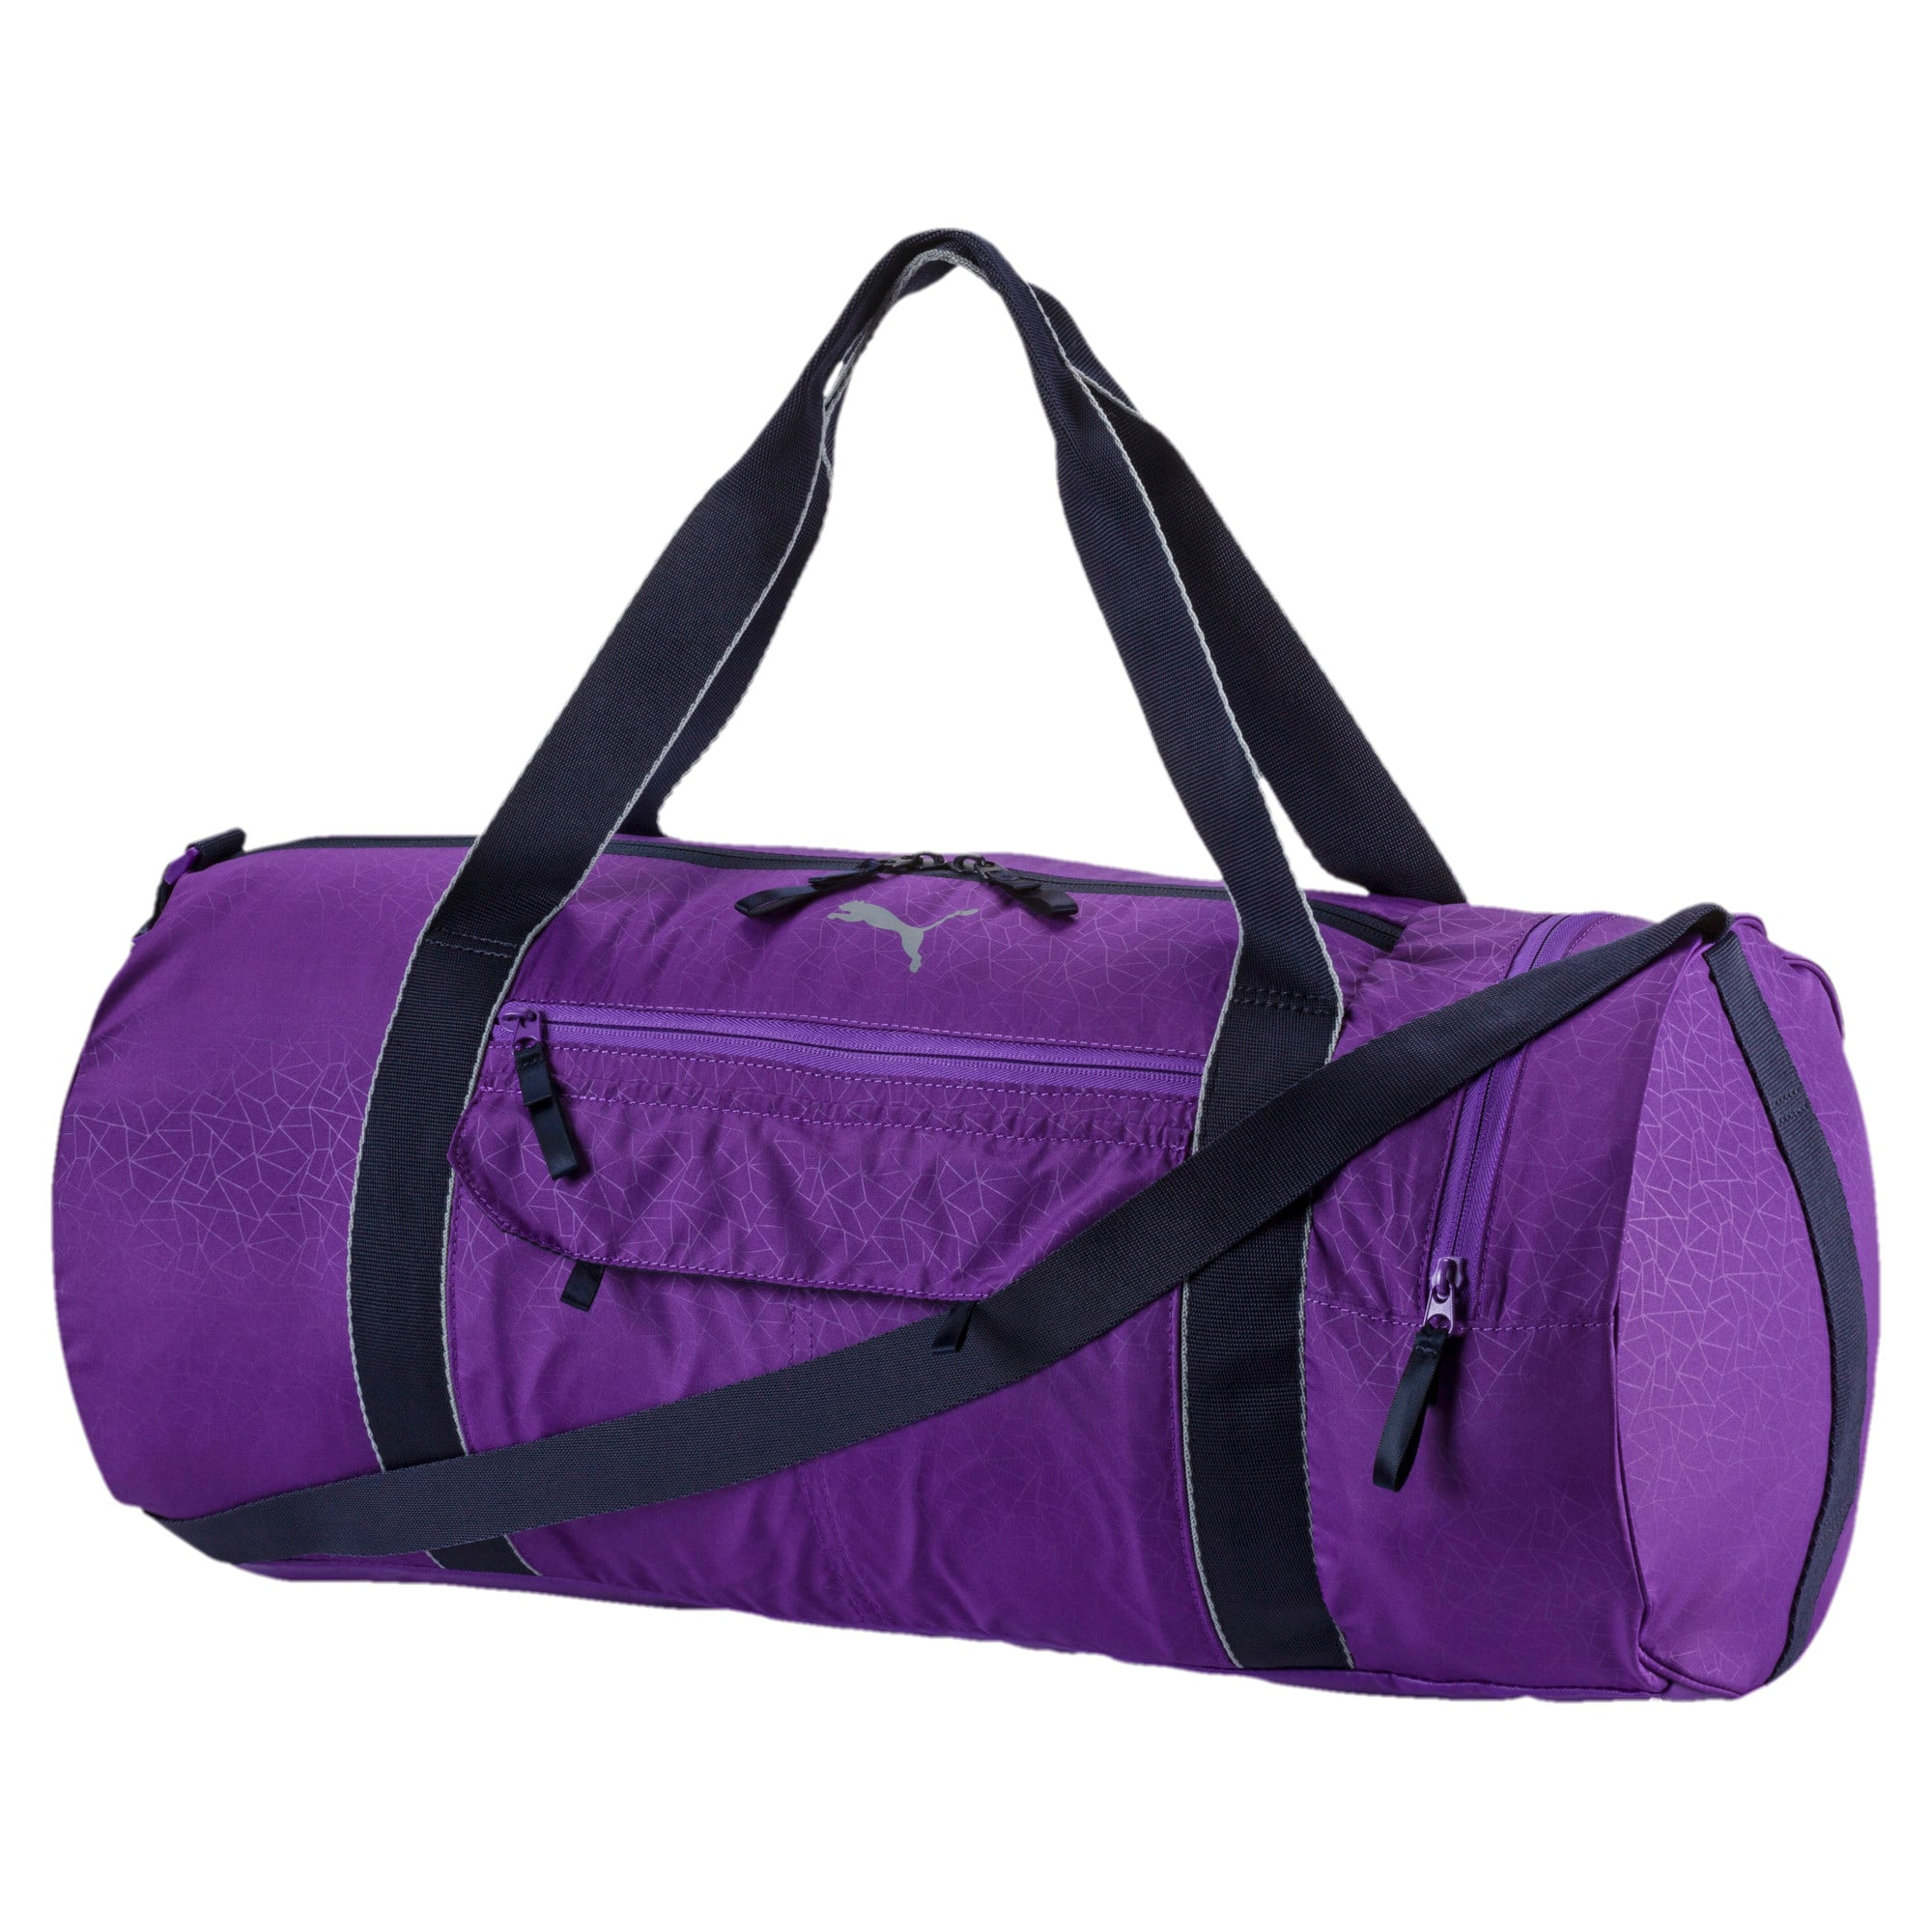 Thumbnail 1 of Training Women's Sports Bag, ELECTRIC PURPLE-Peacoat, medium-IND